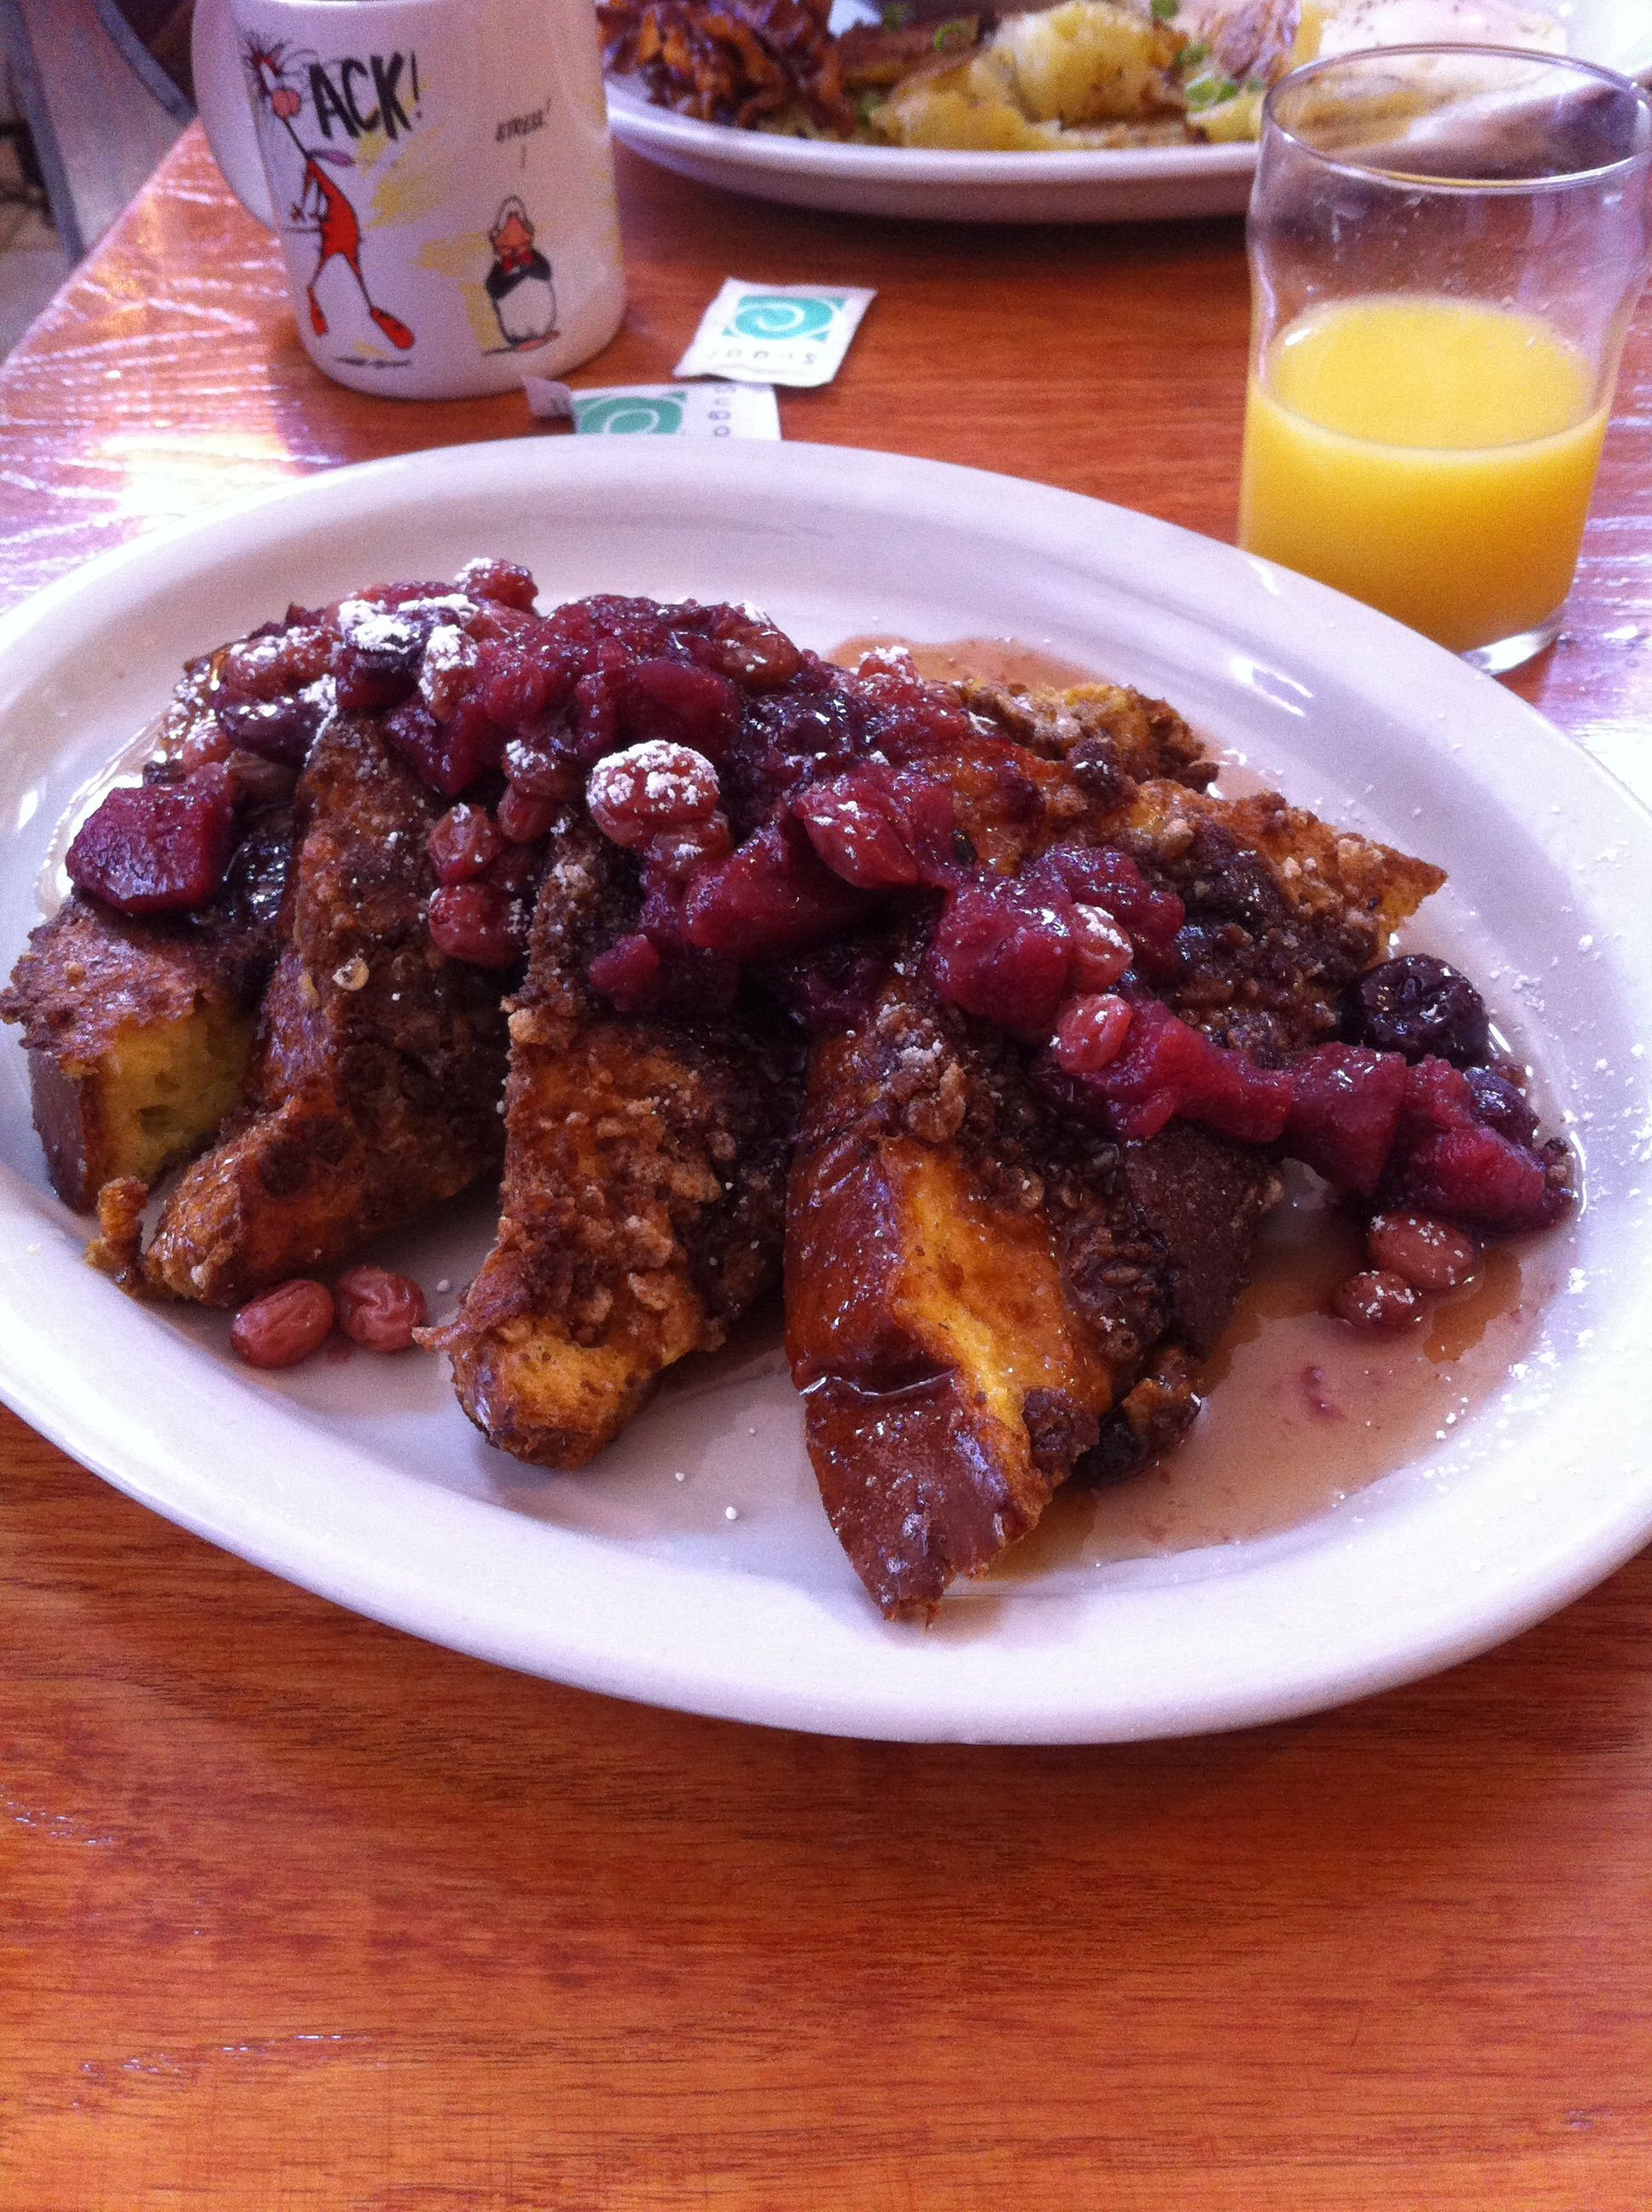 French Toast From The Black Sheep The Black Sheep Is A Restaurant In Richmond Va Food Beef French Toast